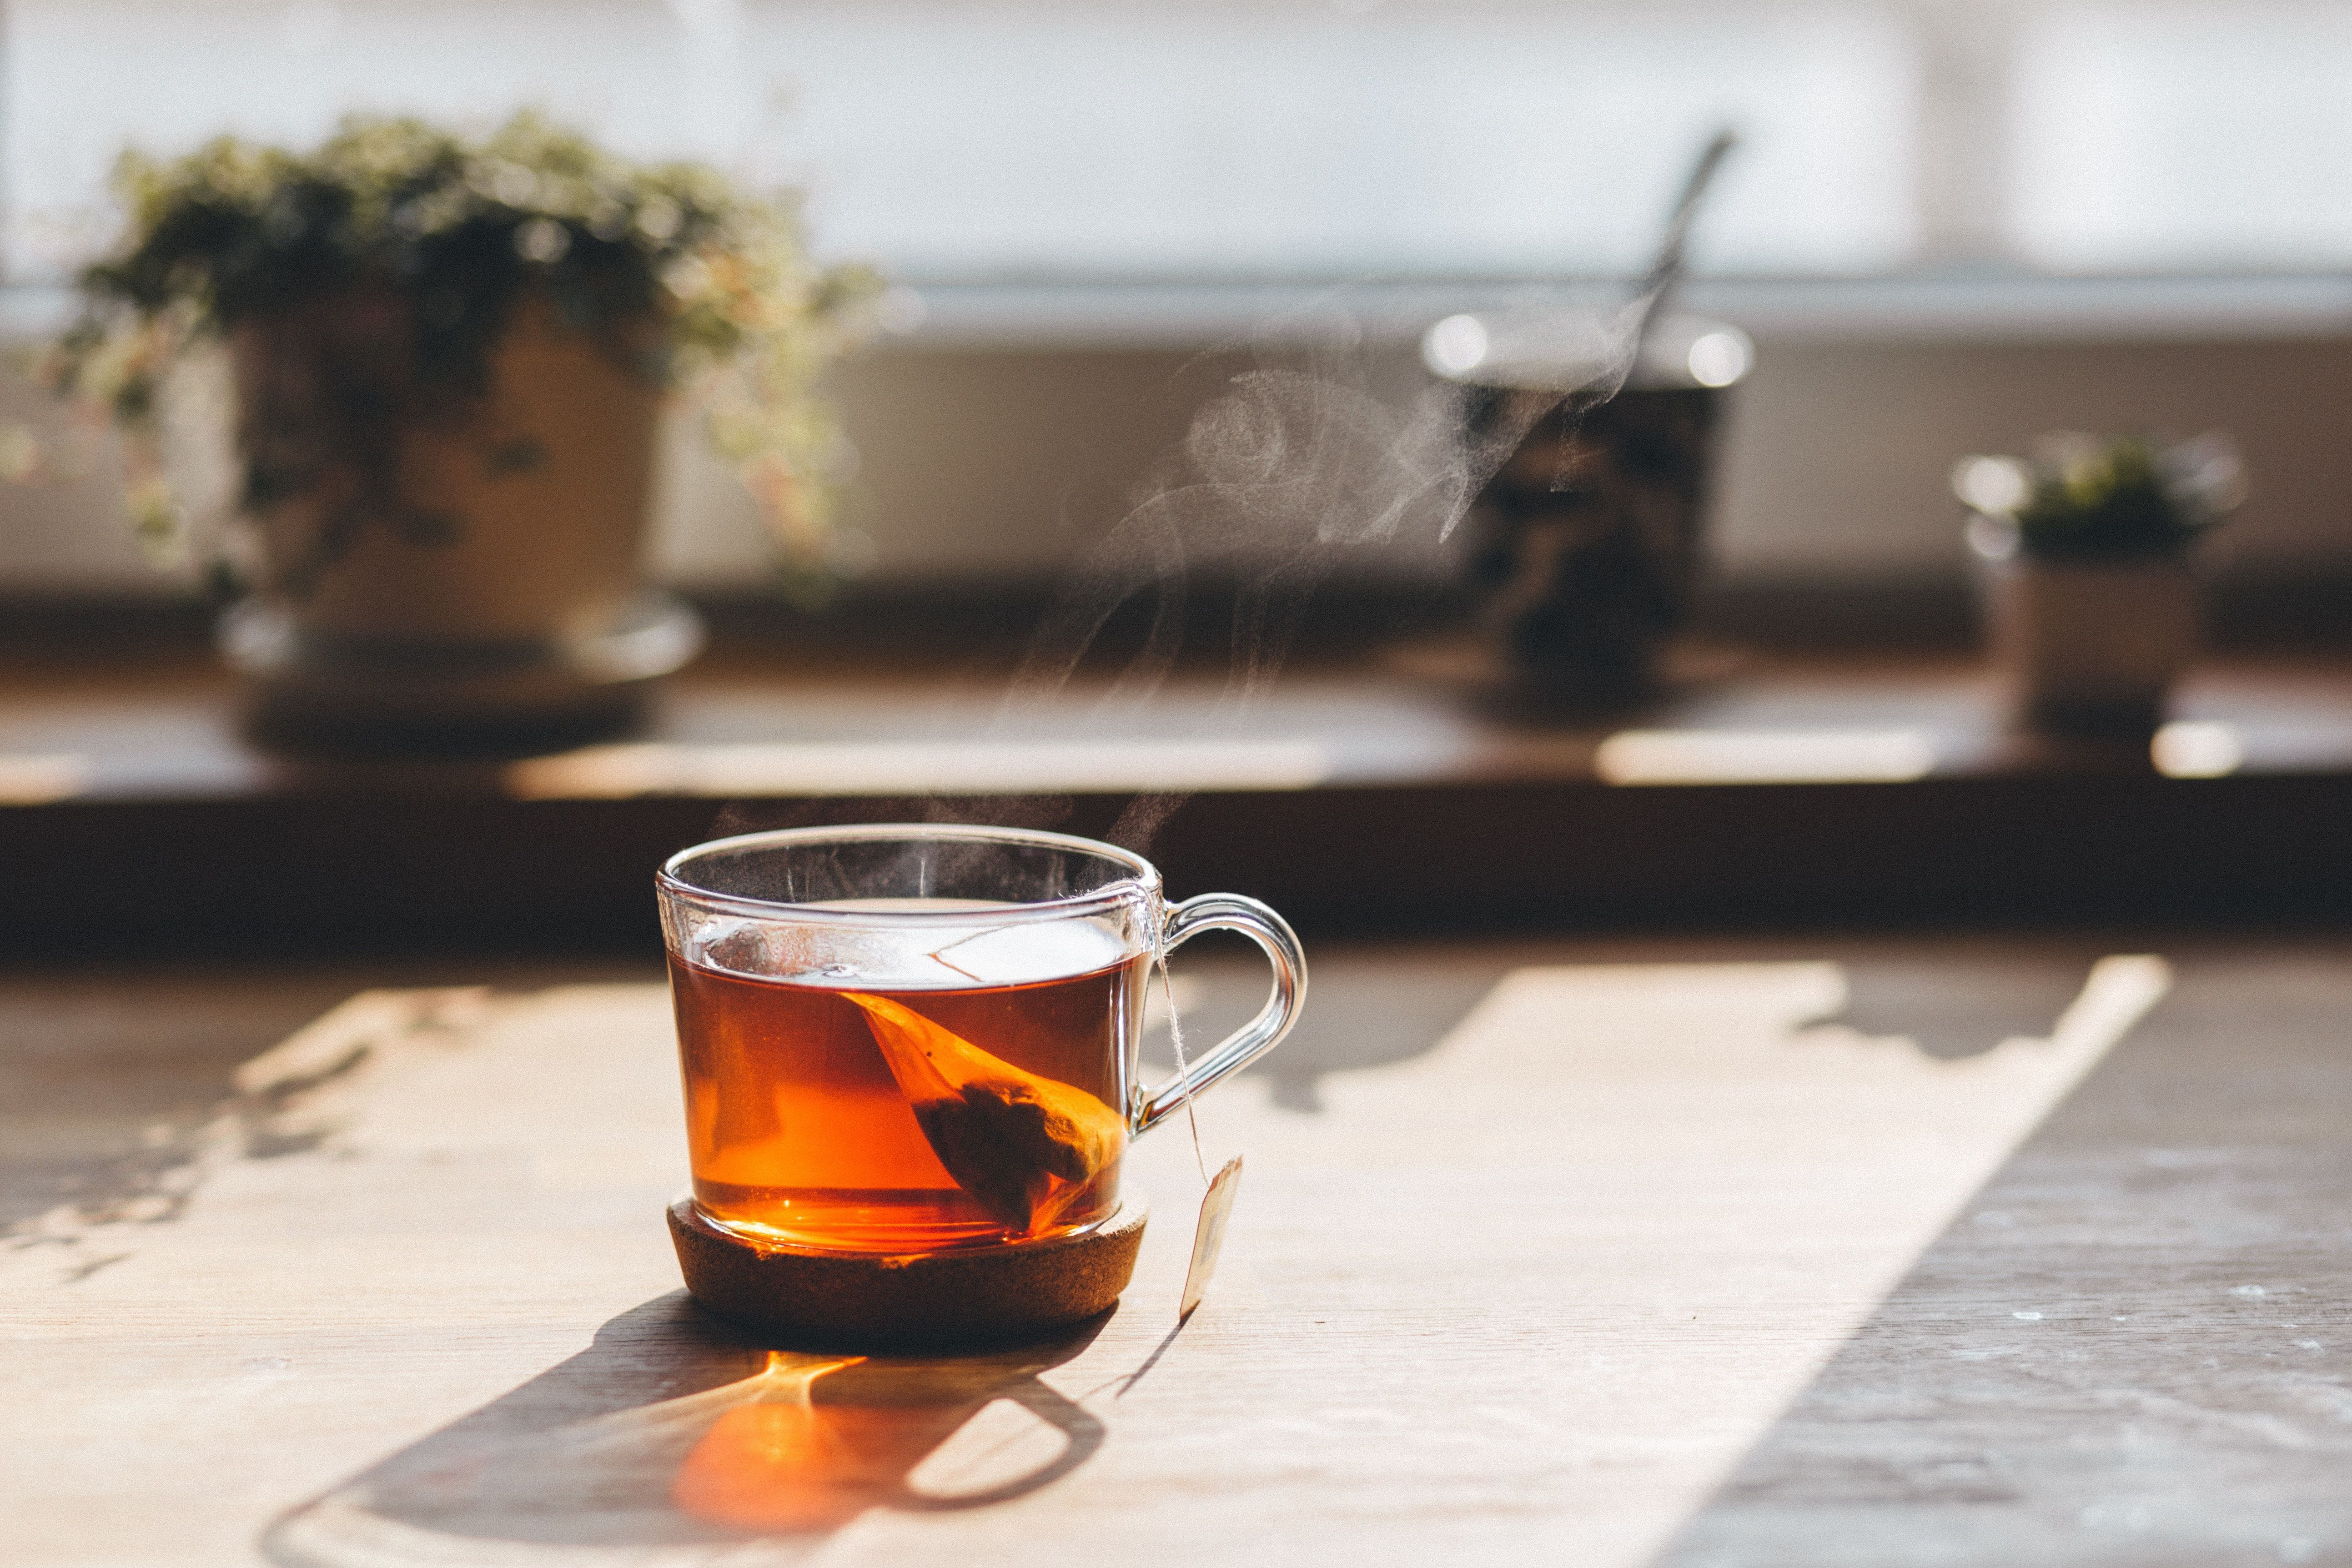 A steaming glass of herbal tea in front of window